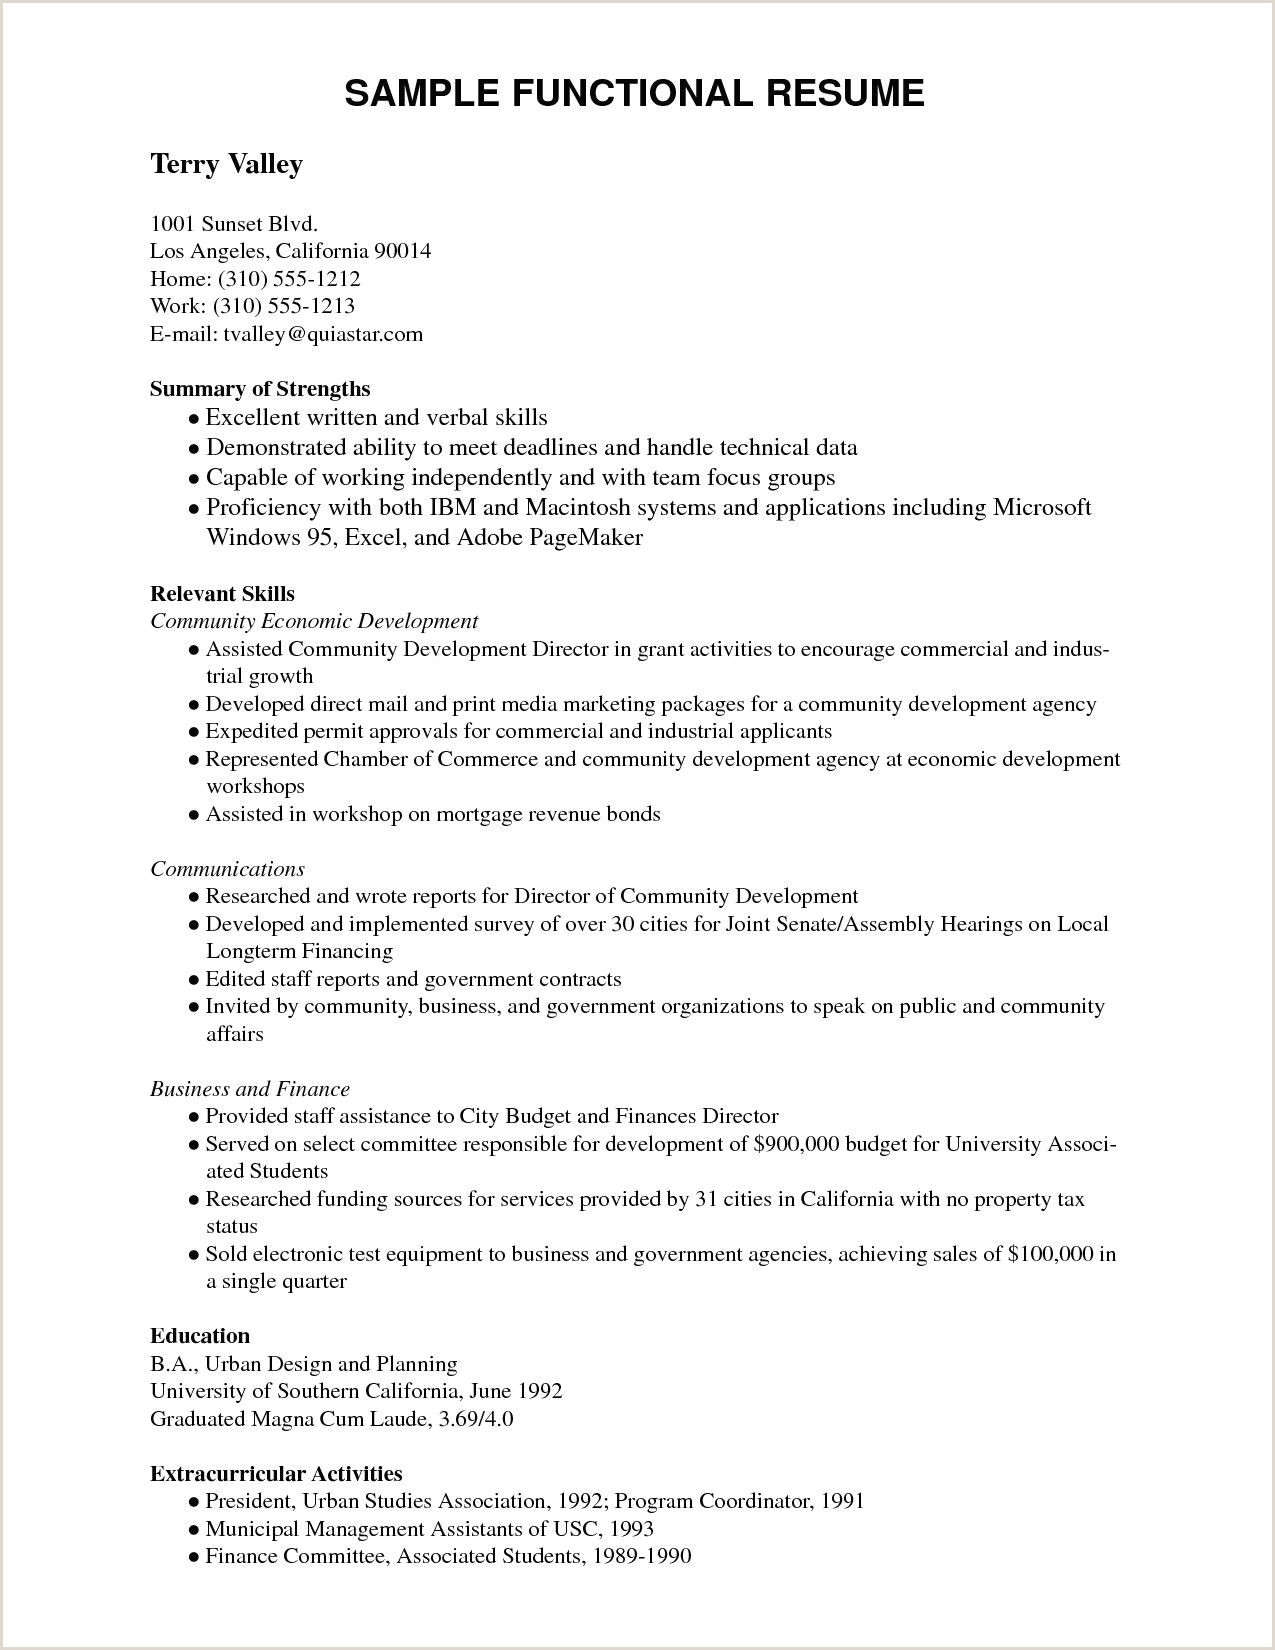 Extracurricular Activities In Resume Sample 70 New Resume Examples for Extracurricular